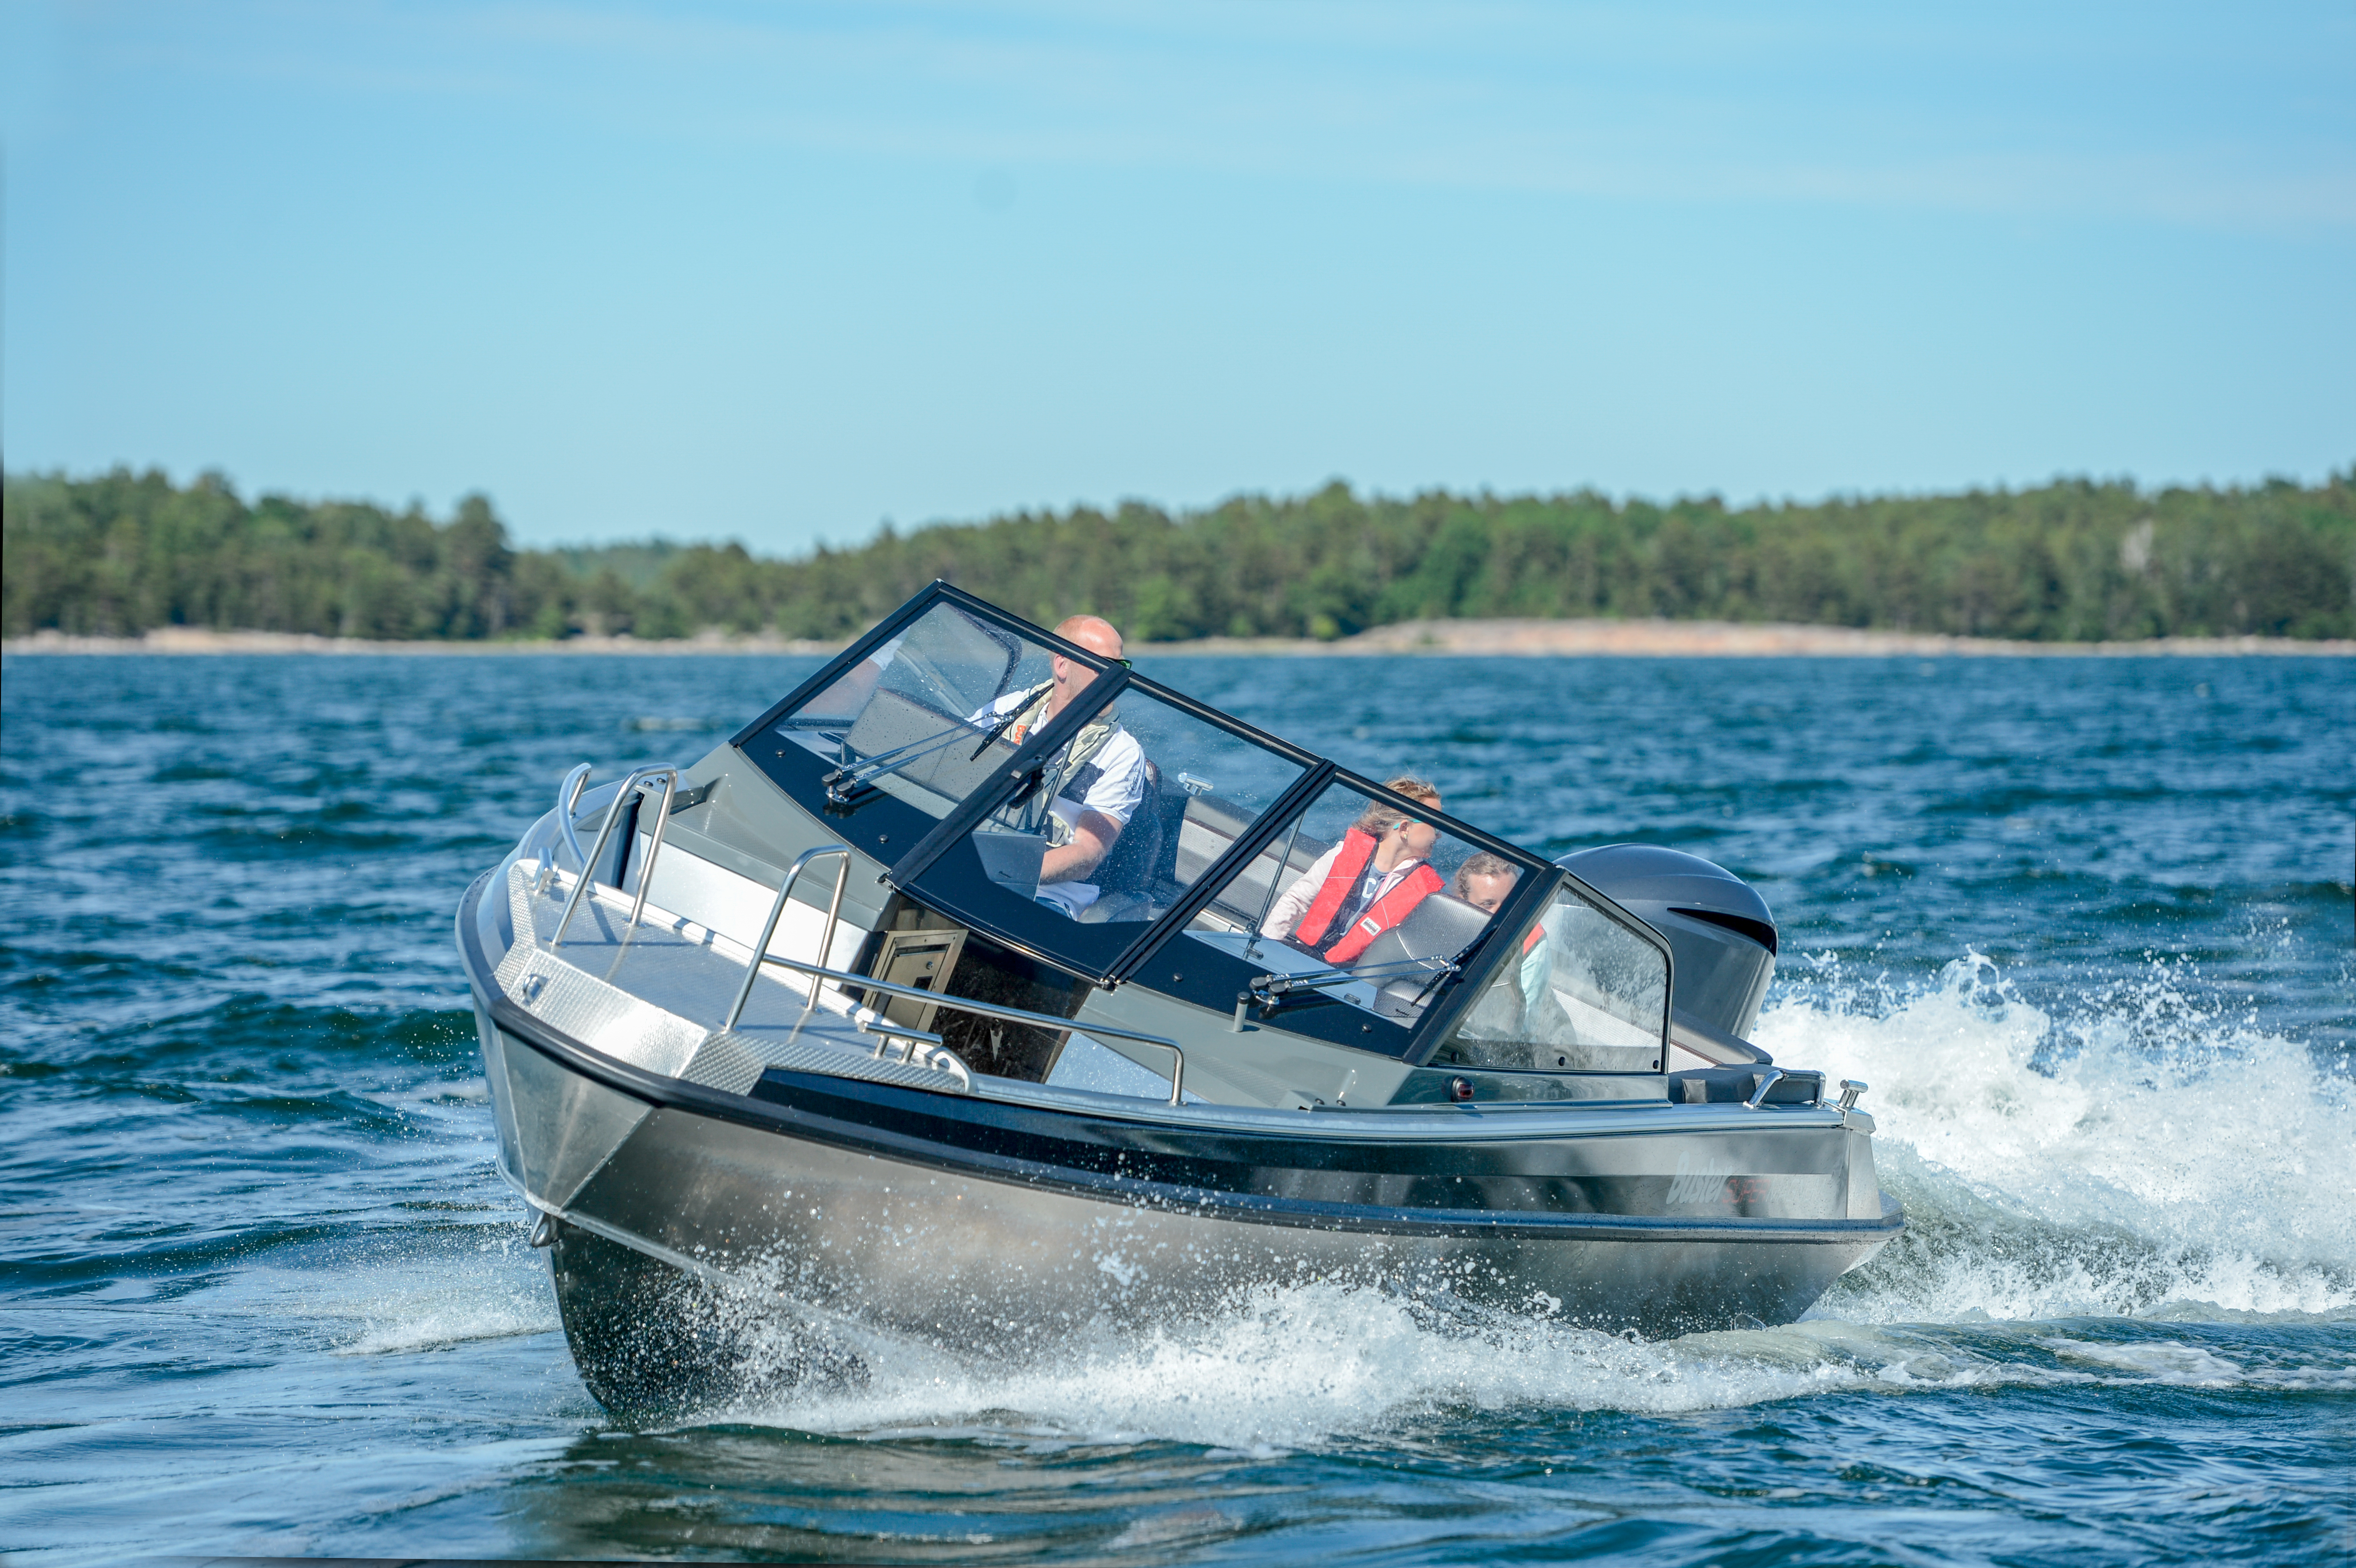 The family of large and fast Buster Magnum open boats expands with